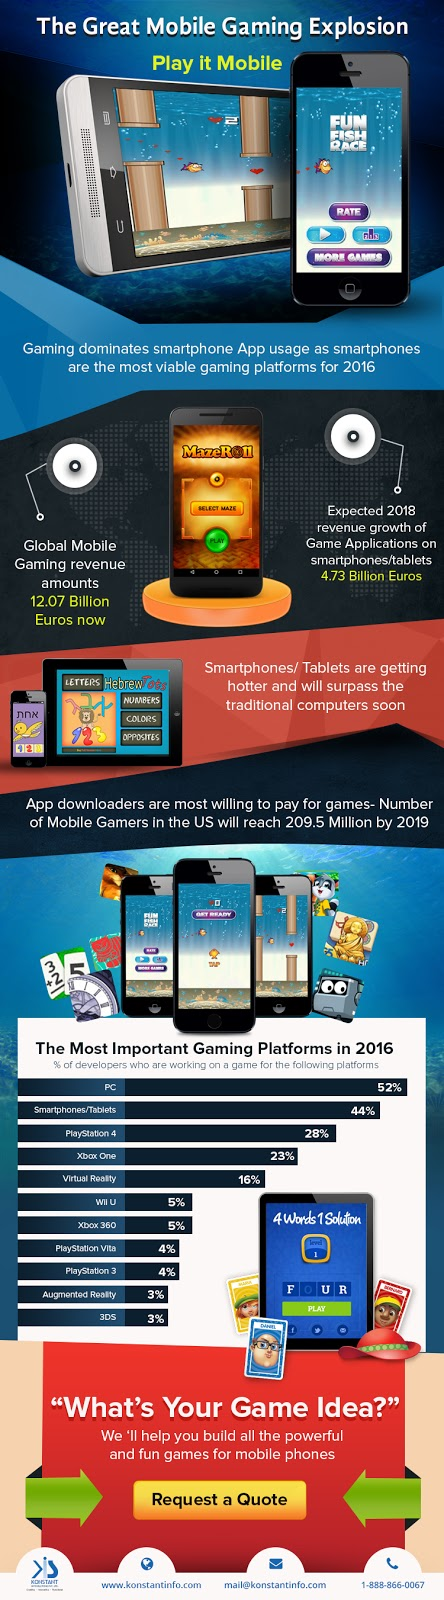 mobile gaming stats 2016